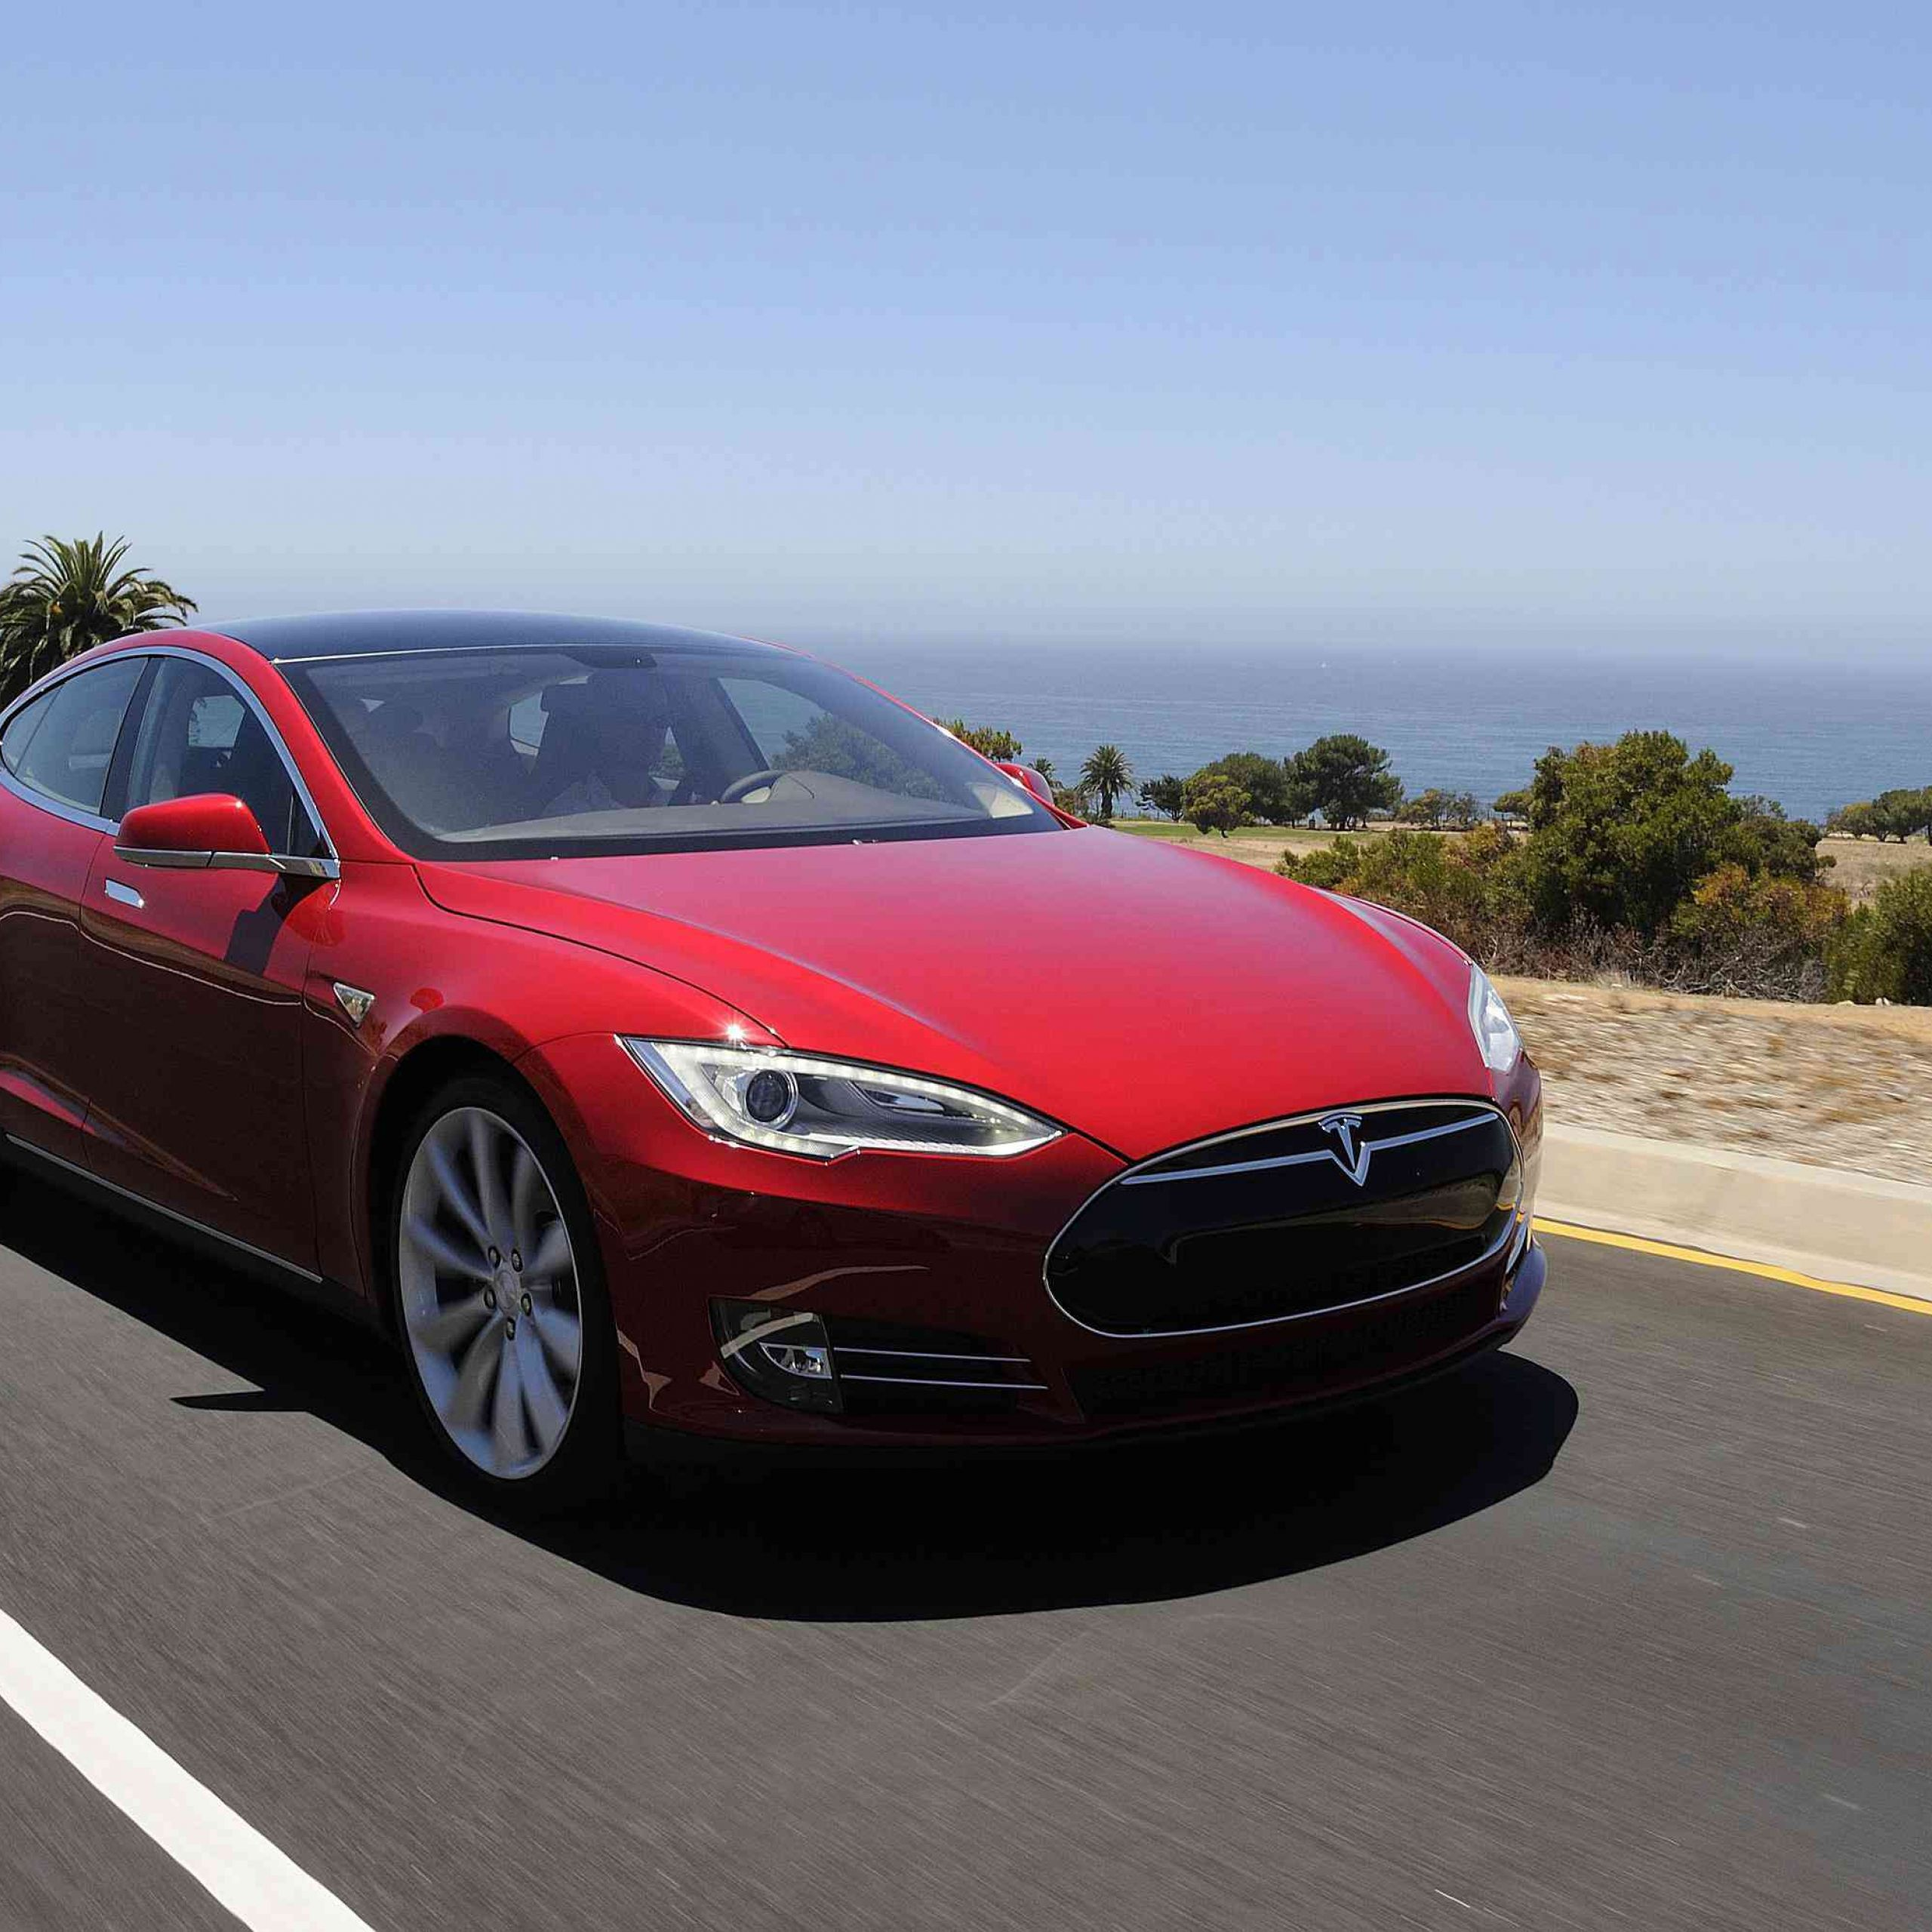 1 Gauss to Tesla Awesome How Tesla Makes Money All Electric Cars and Energy Generation